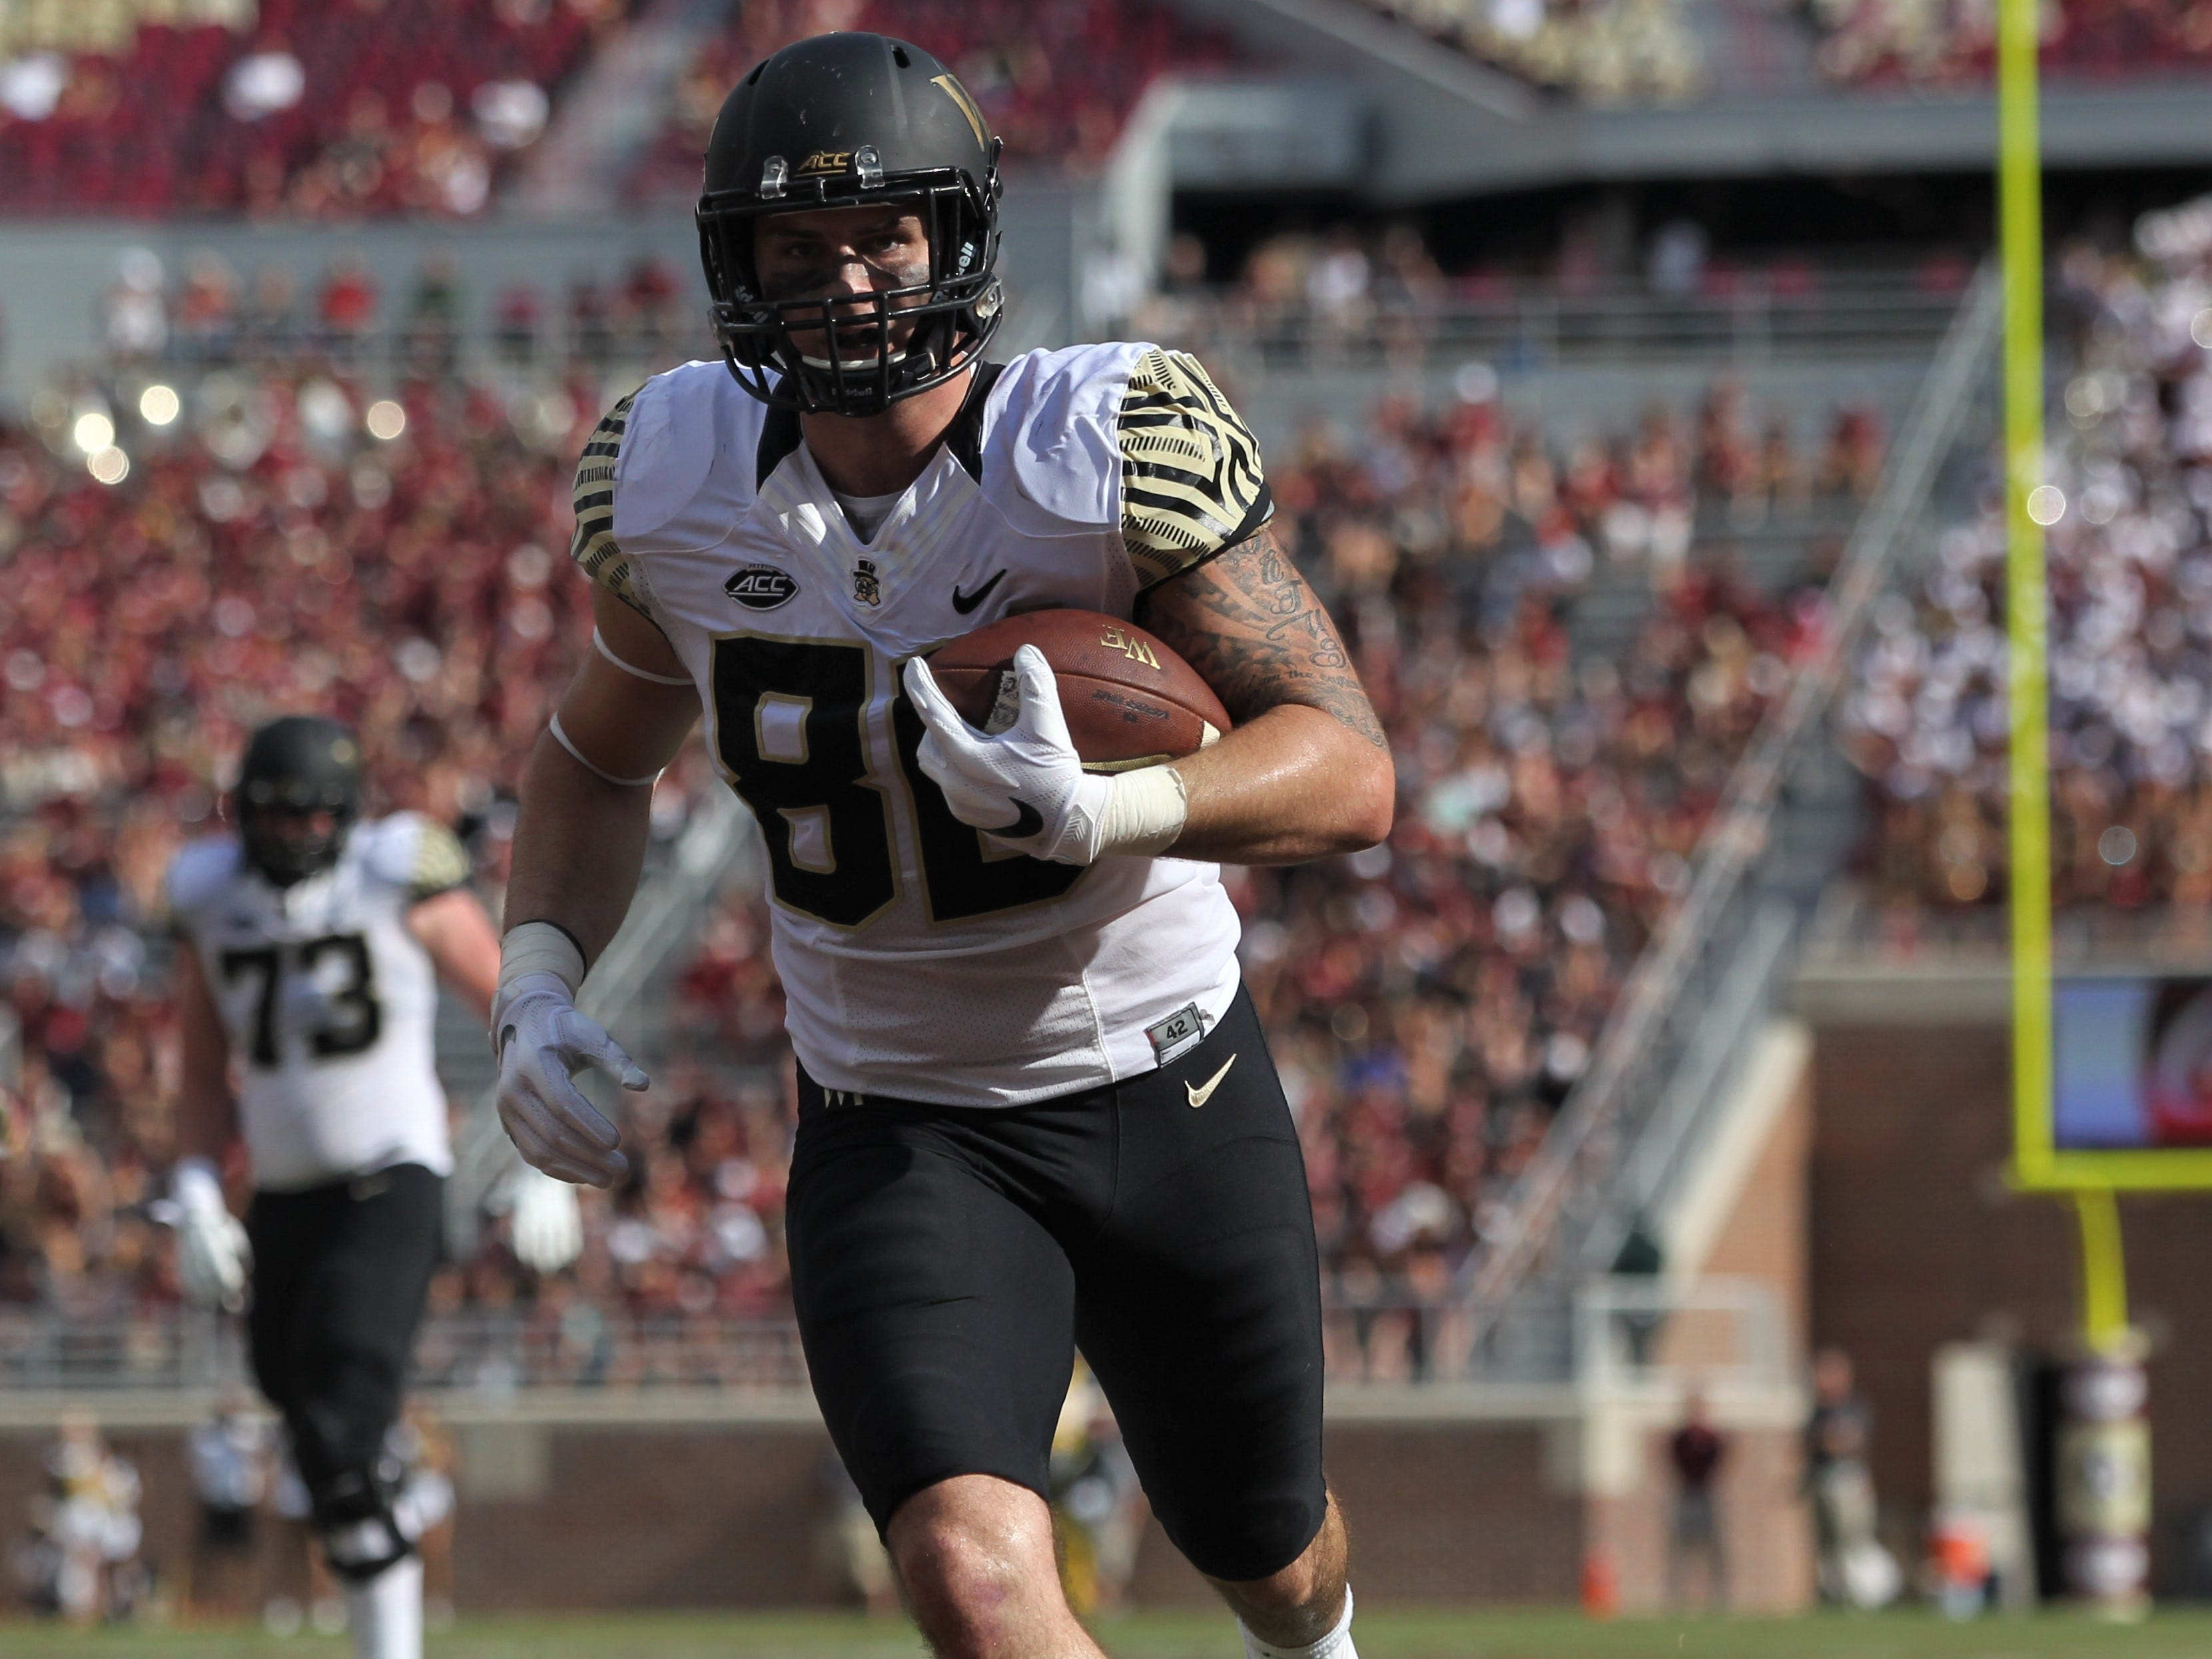 Wake Forest tight end Jack Freudenthal breaks free of Florida State defensive back Hamsah Nasirildeen for a touchdown at Doak Campbell Stadium on Saturday, Oct. 20, 2018.